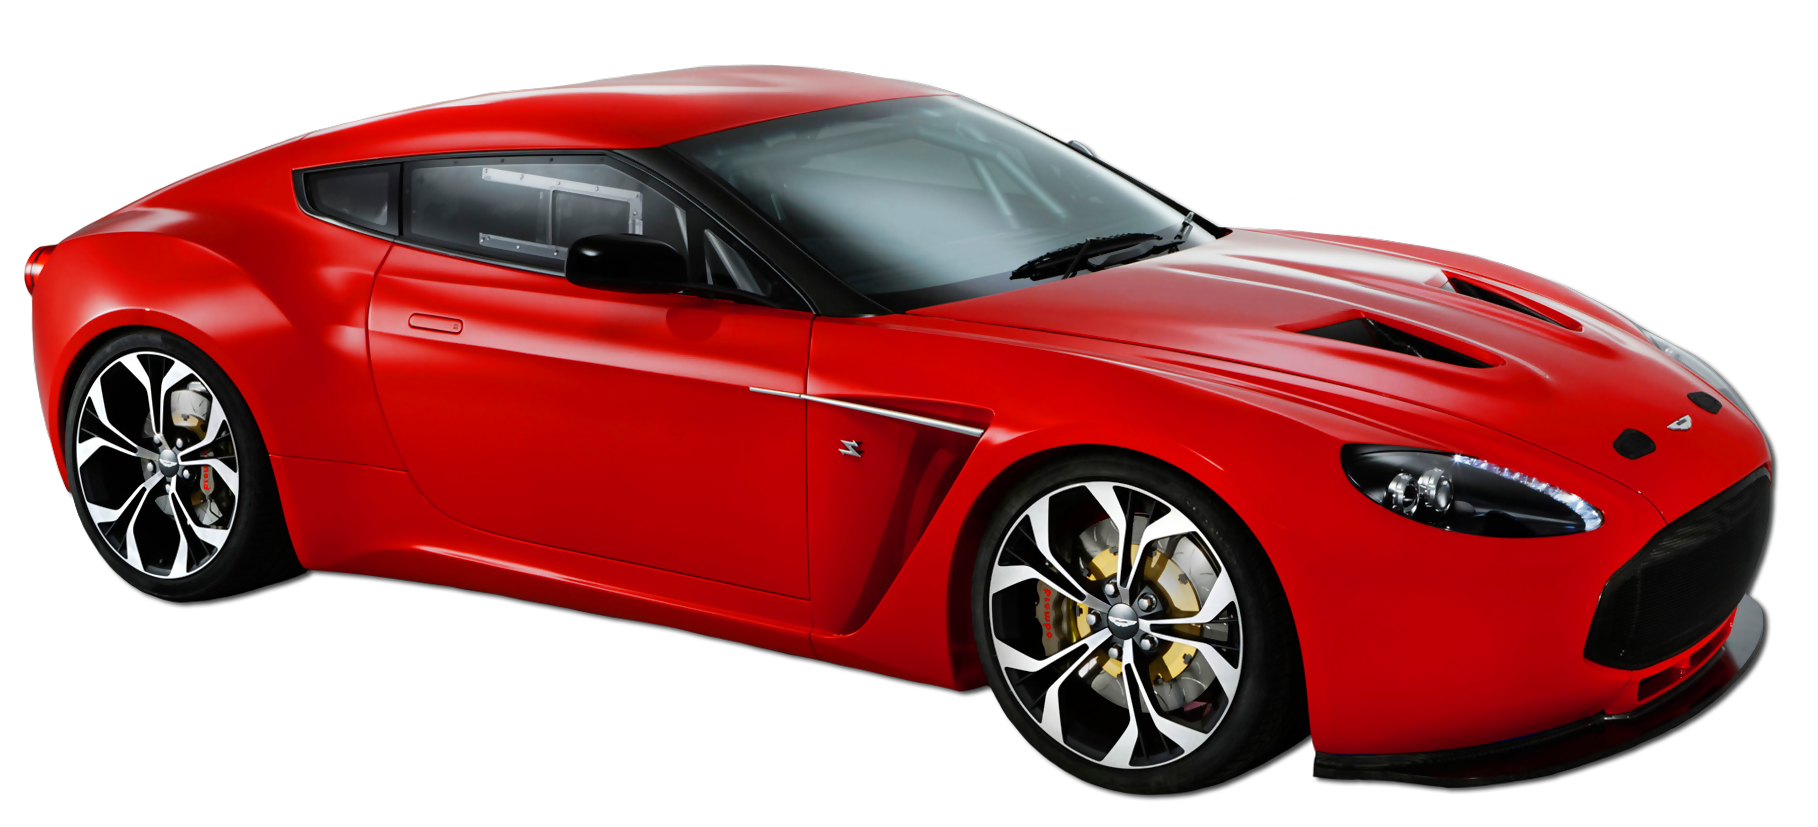 Red Cars Png image #39074